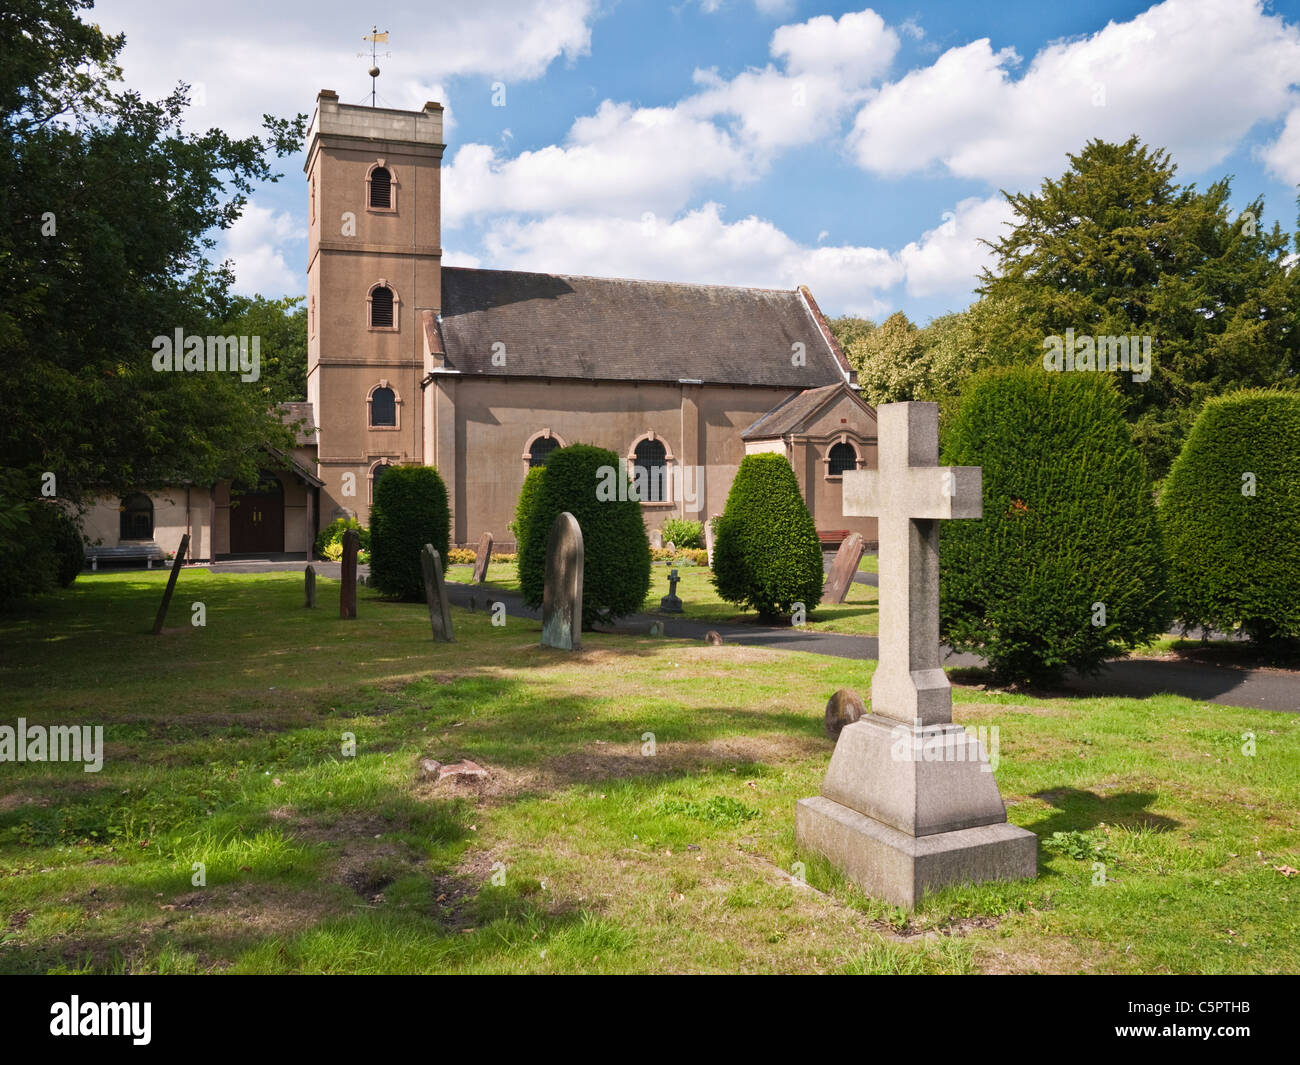 The church of St. Michael and All Saints in the village of Himley on the South Staffordshire & West Midlands - Stock Image